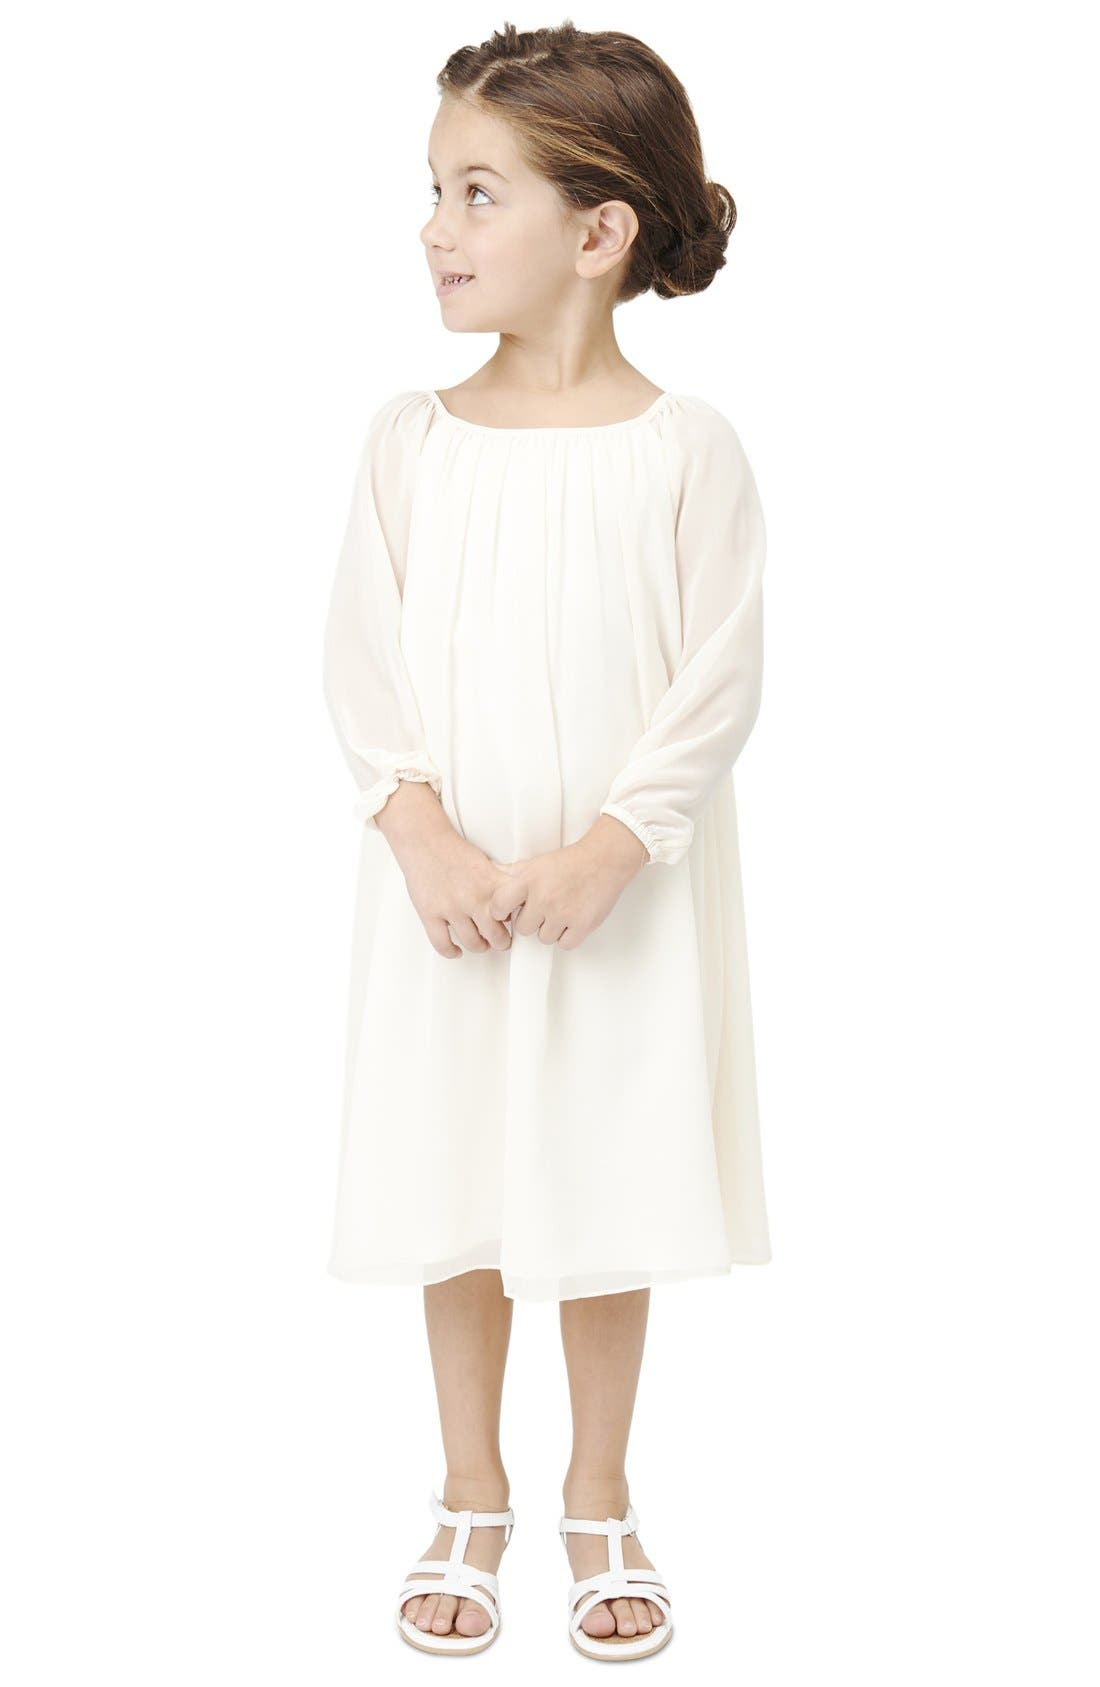 Main Image - Babes of the Nile by Joanna August Long Sleeve Chiffon Midi Dress (Toddler Girls, Little Girls & Big Girls)